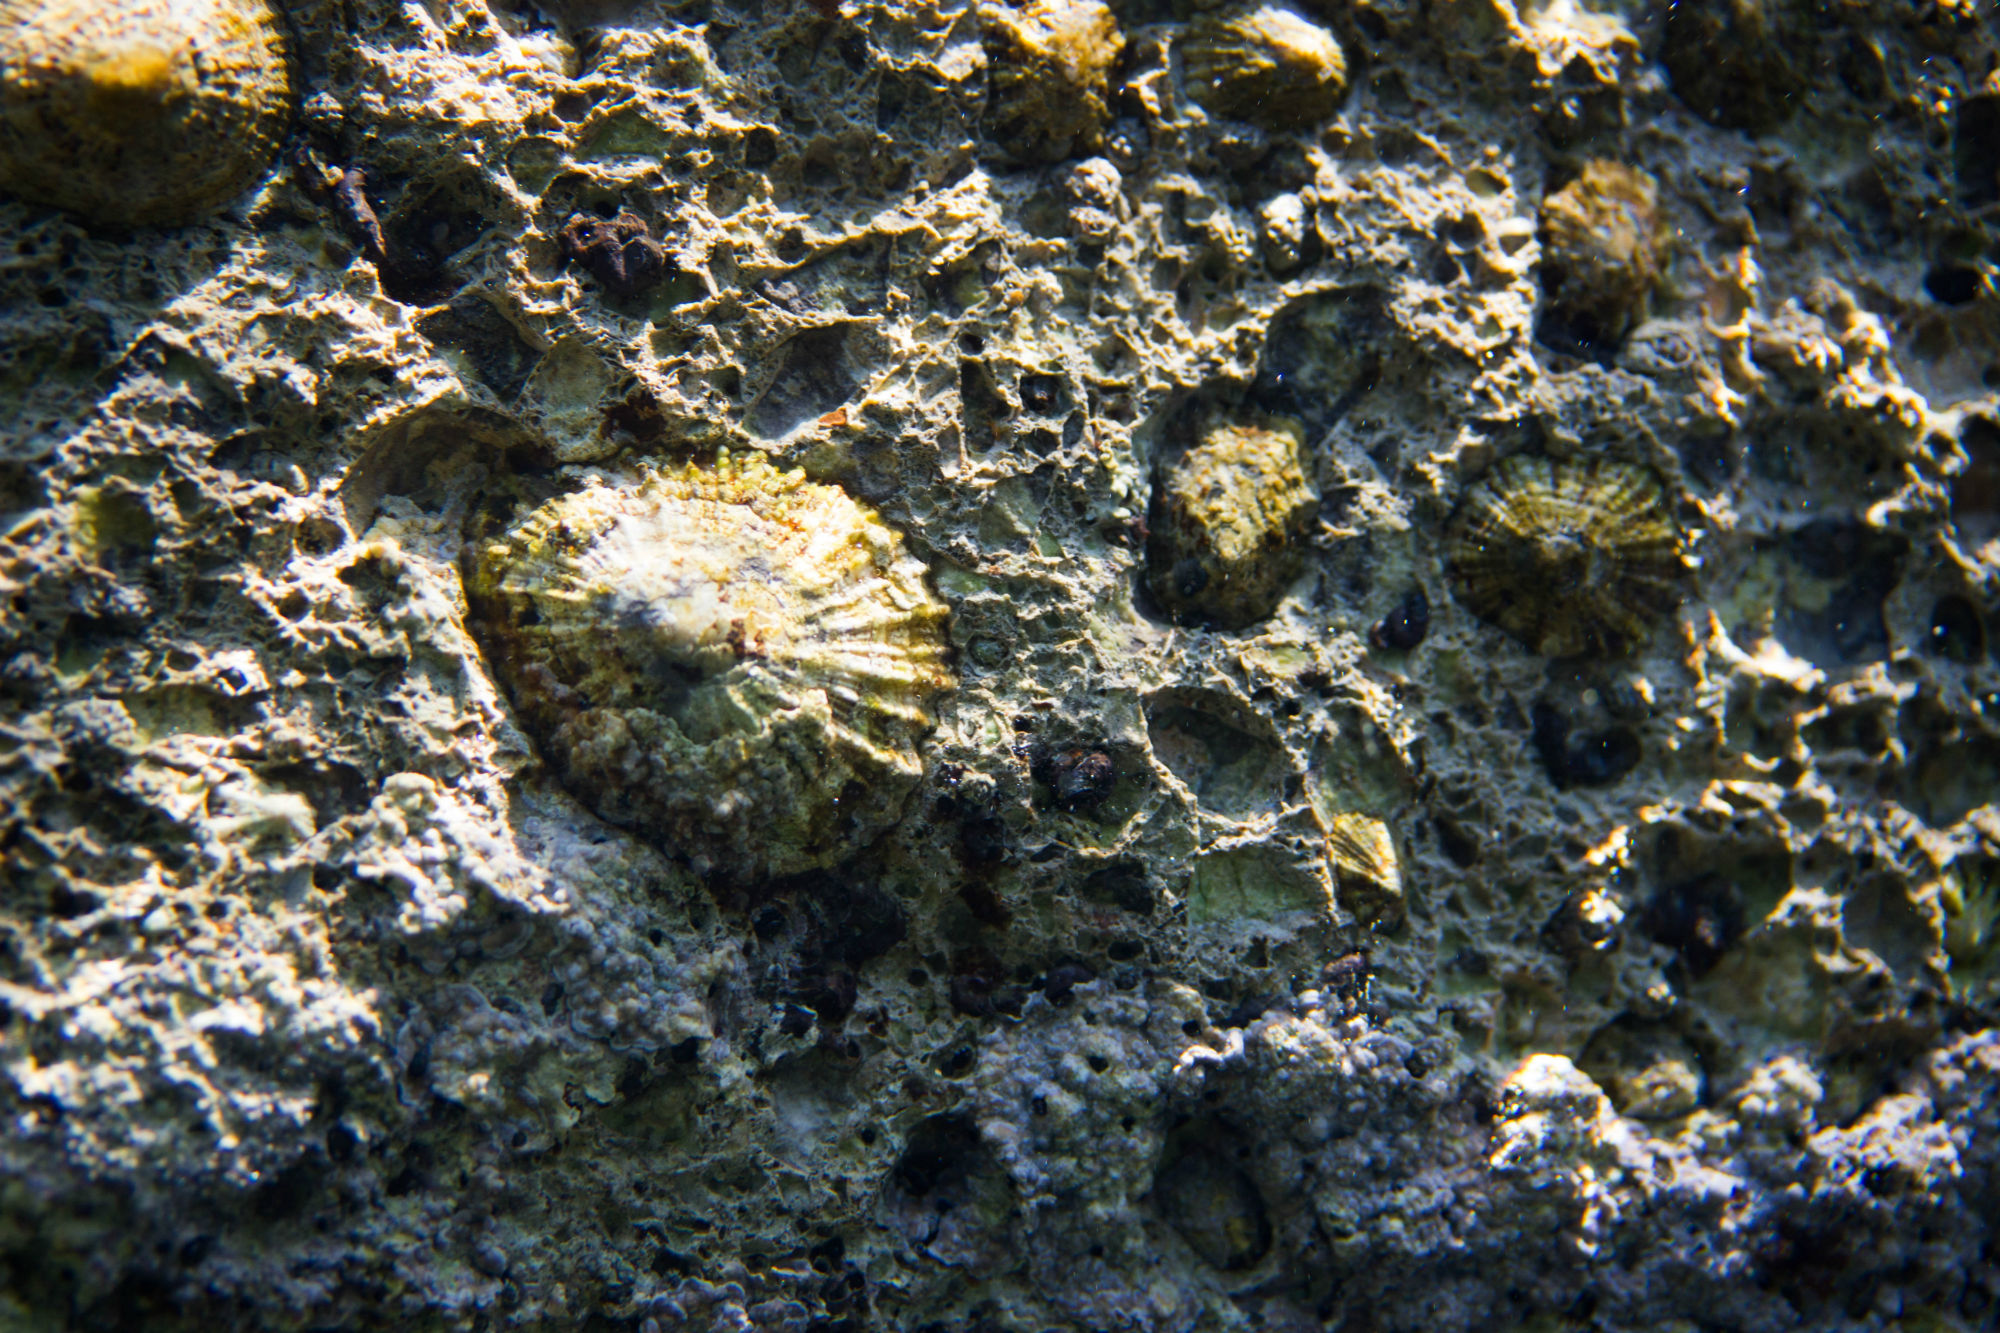 Some Limpets Anchored To The Wall In Croatia